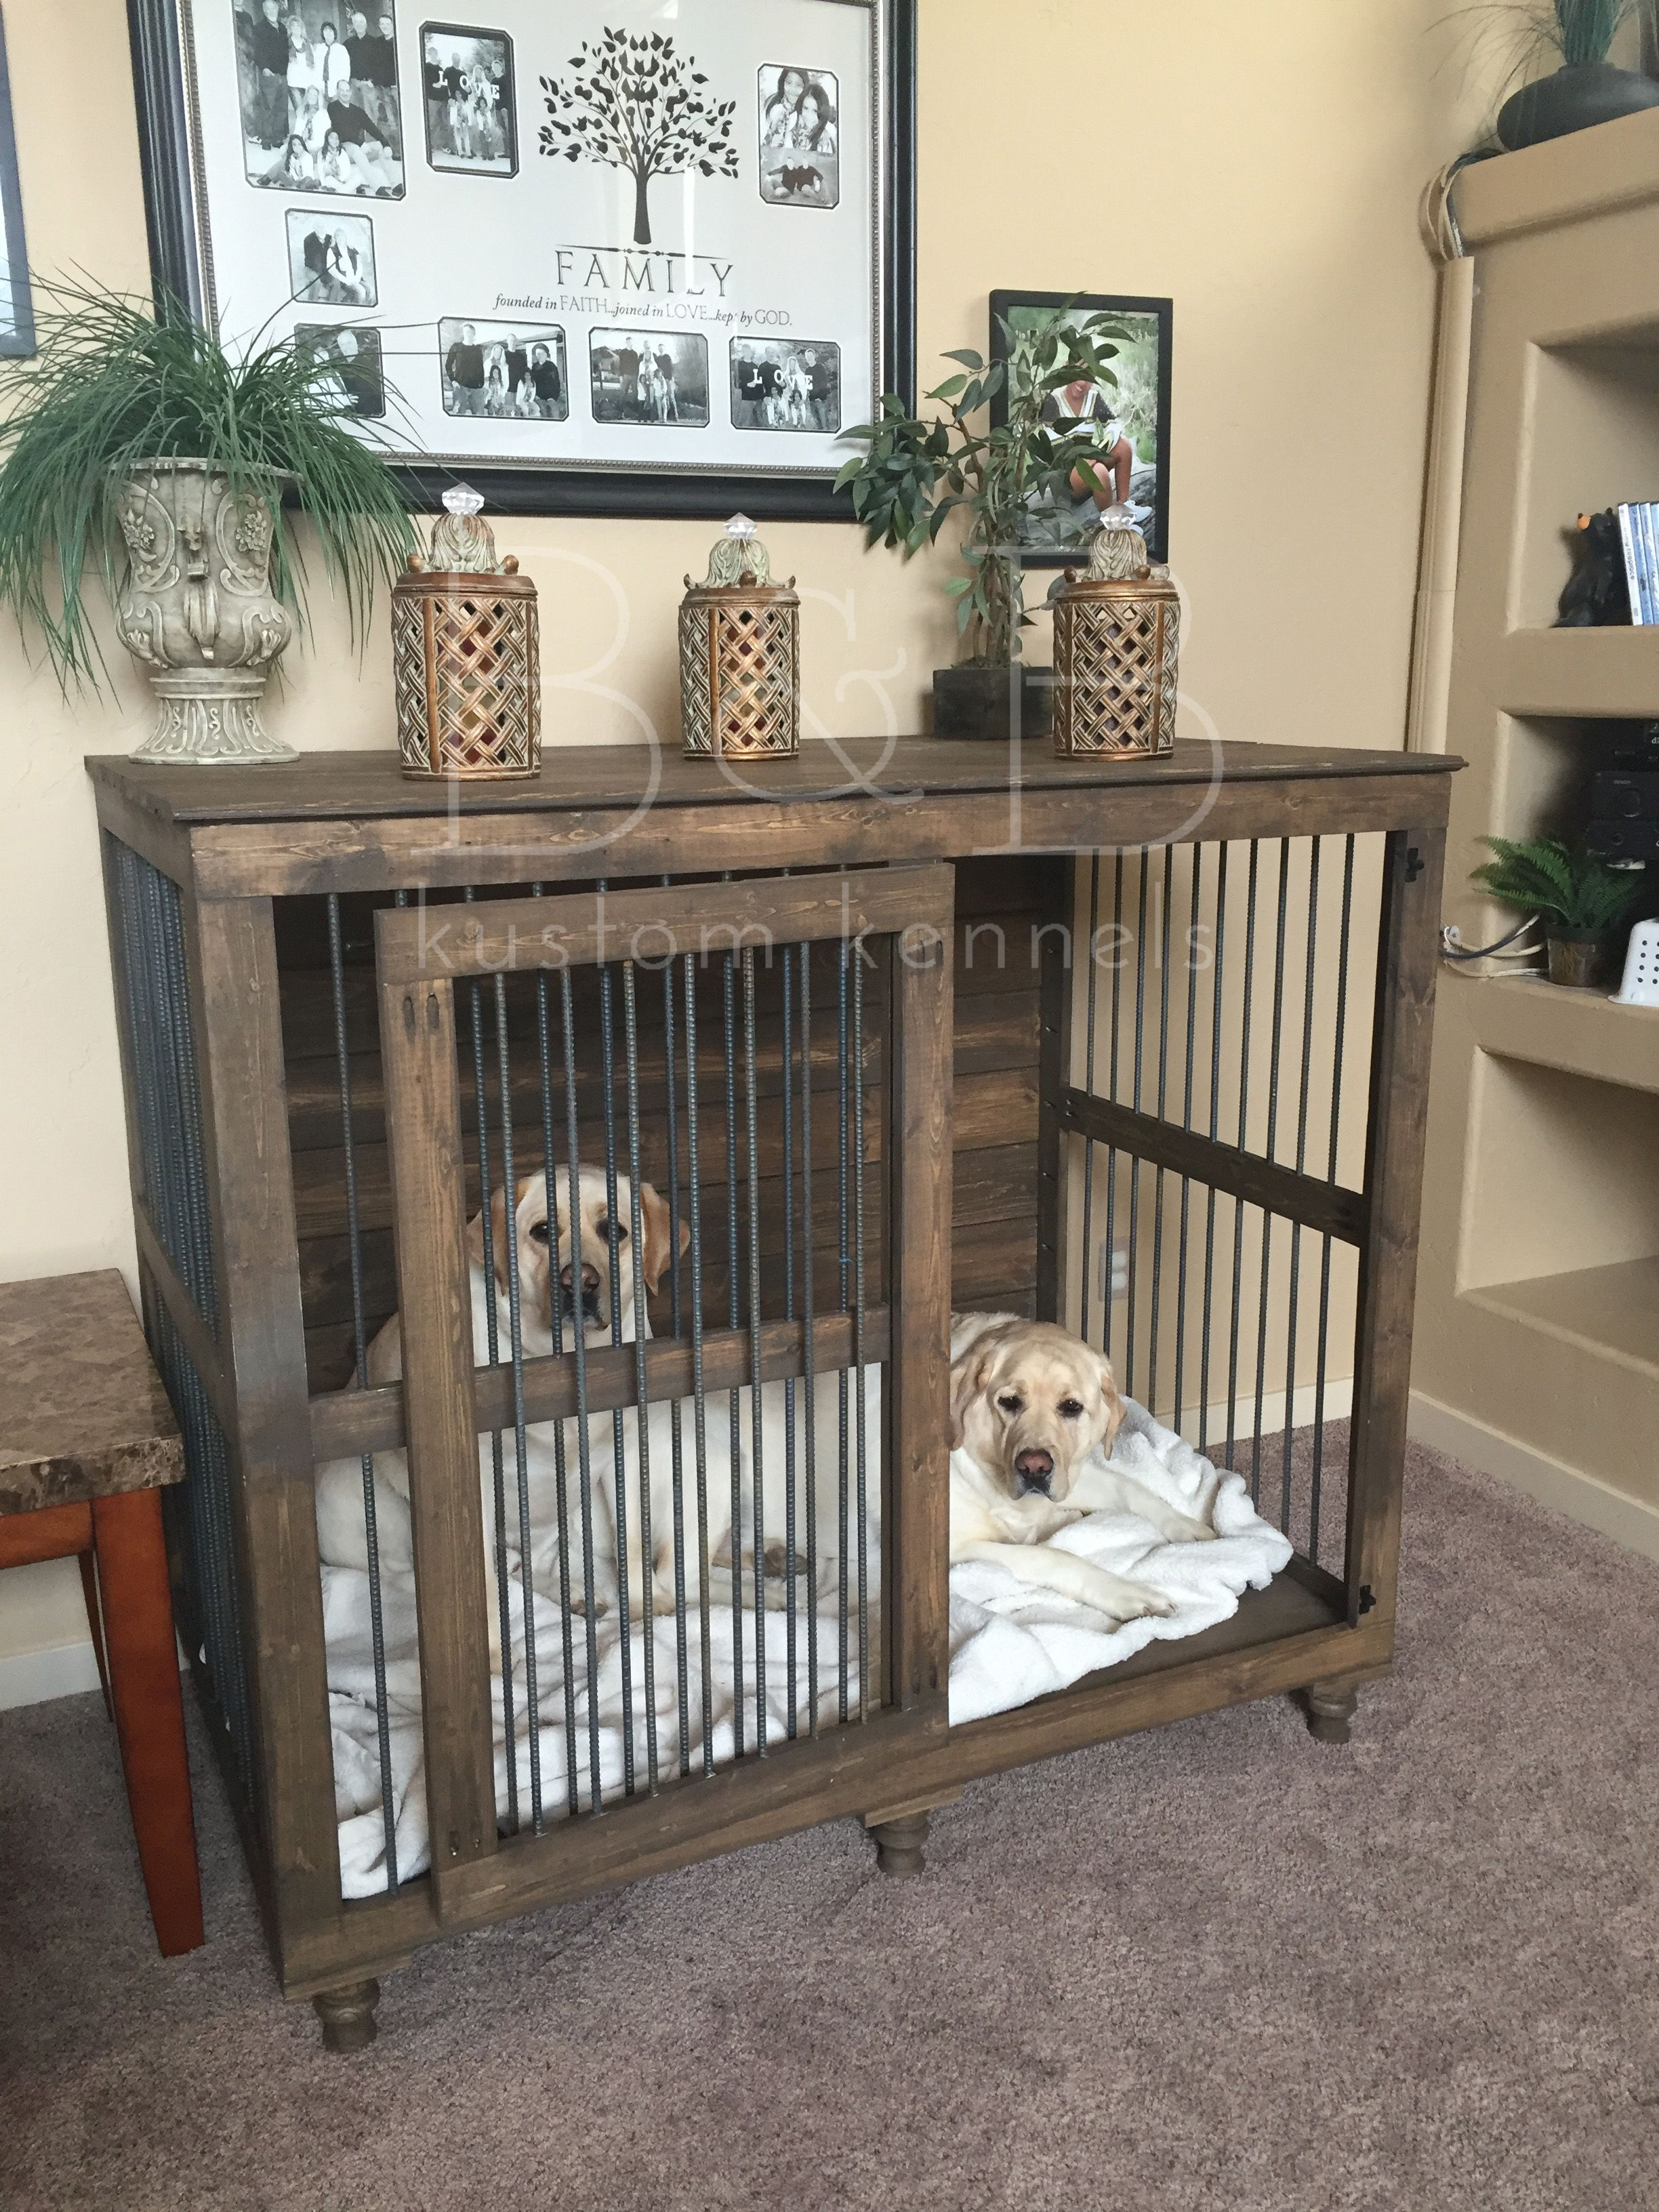 Xxl Single Not Just For Giant Breeds Dog Kennel Furniture Crate